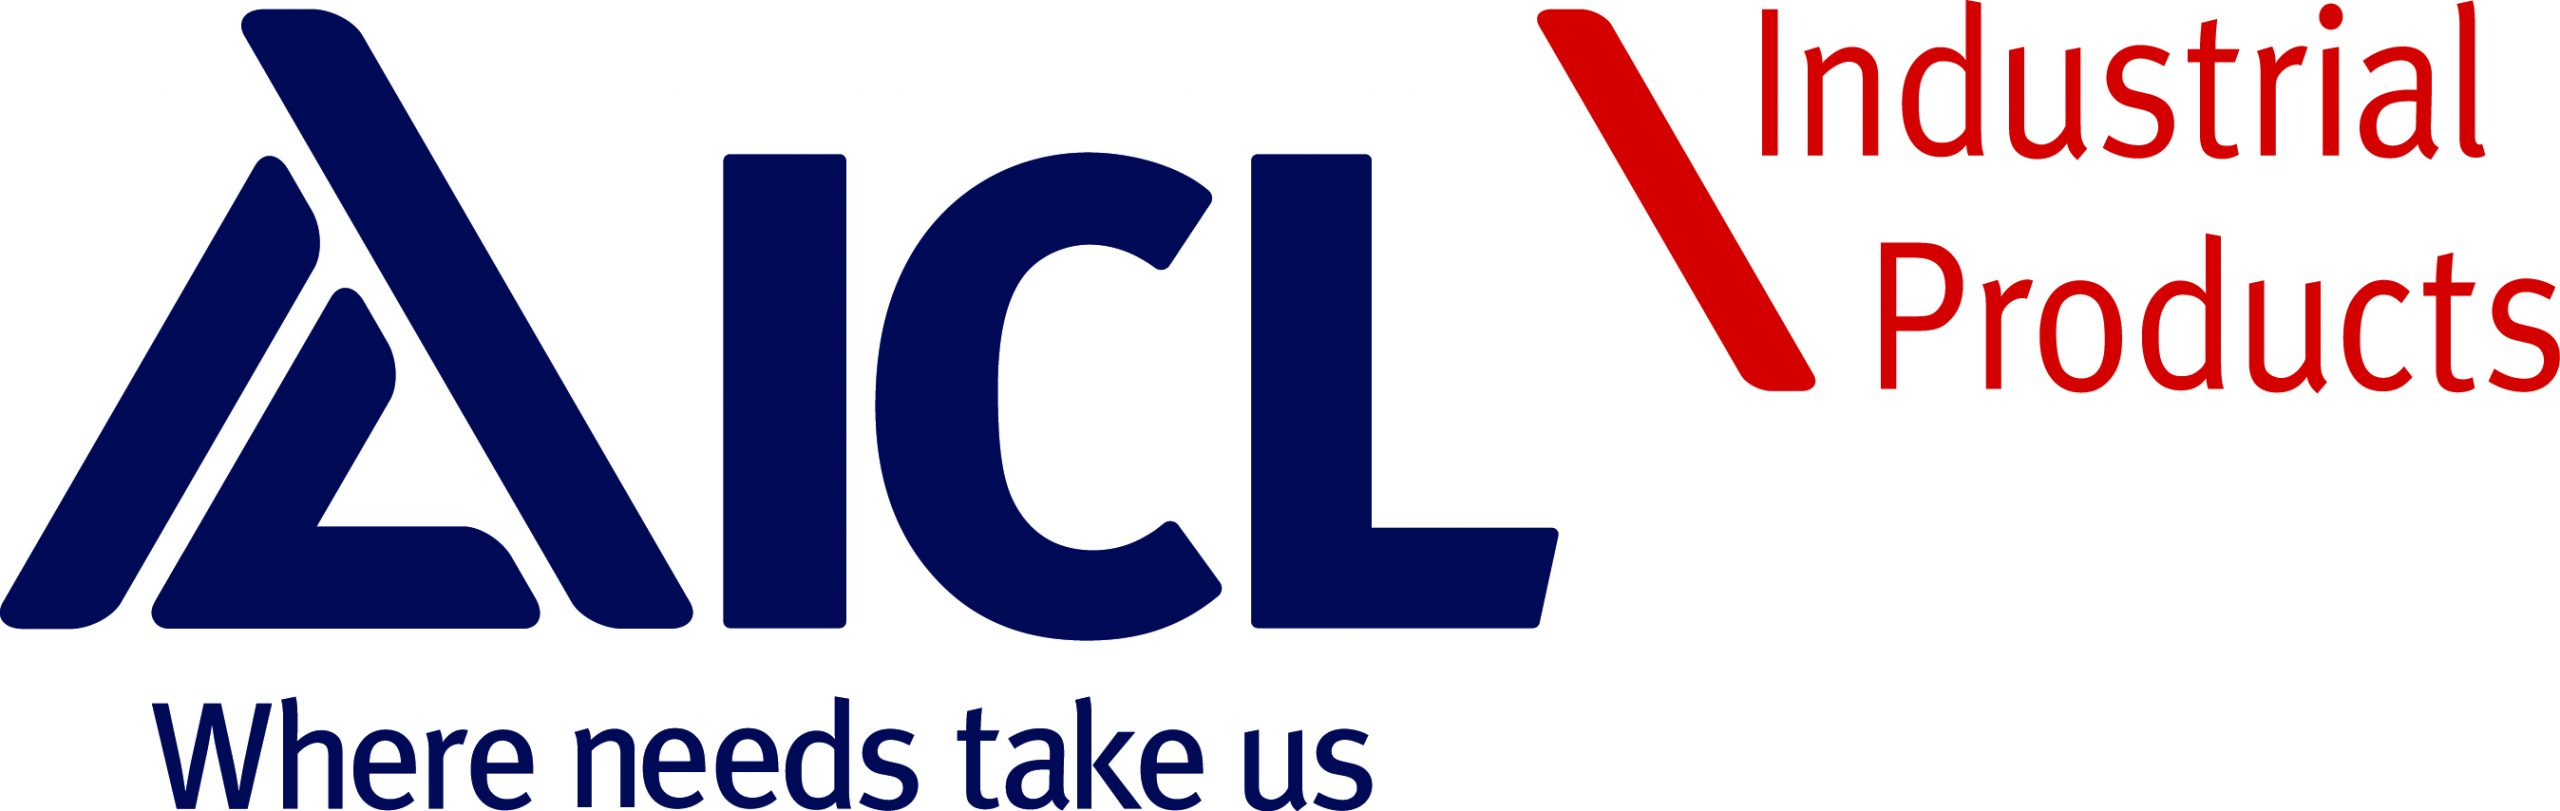 ICL_Industrial_Products